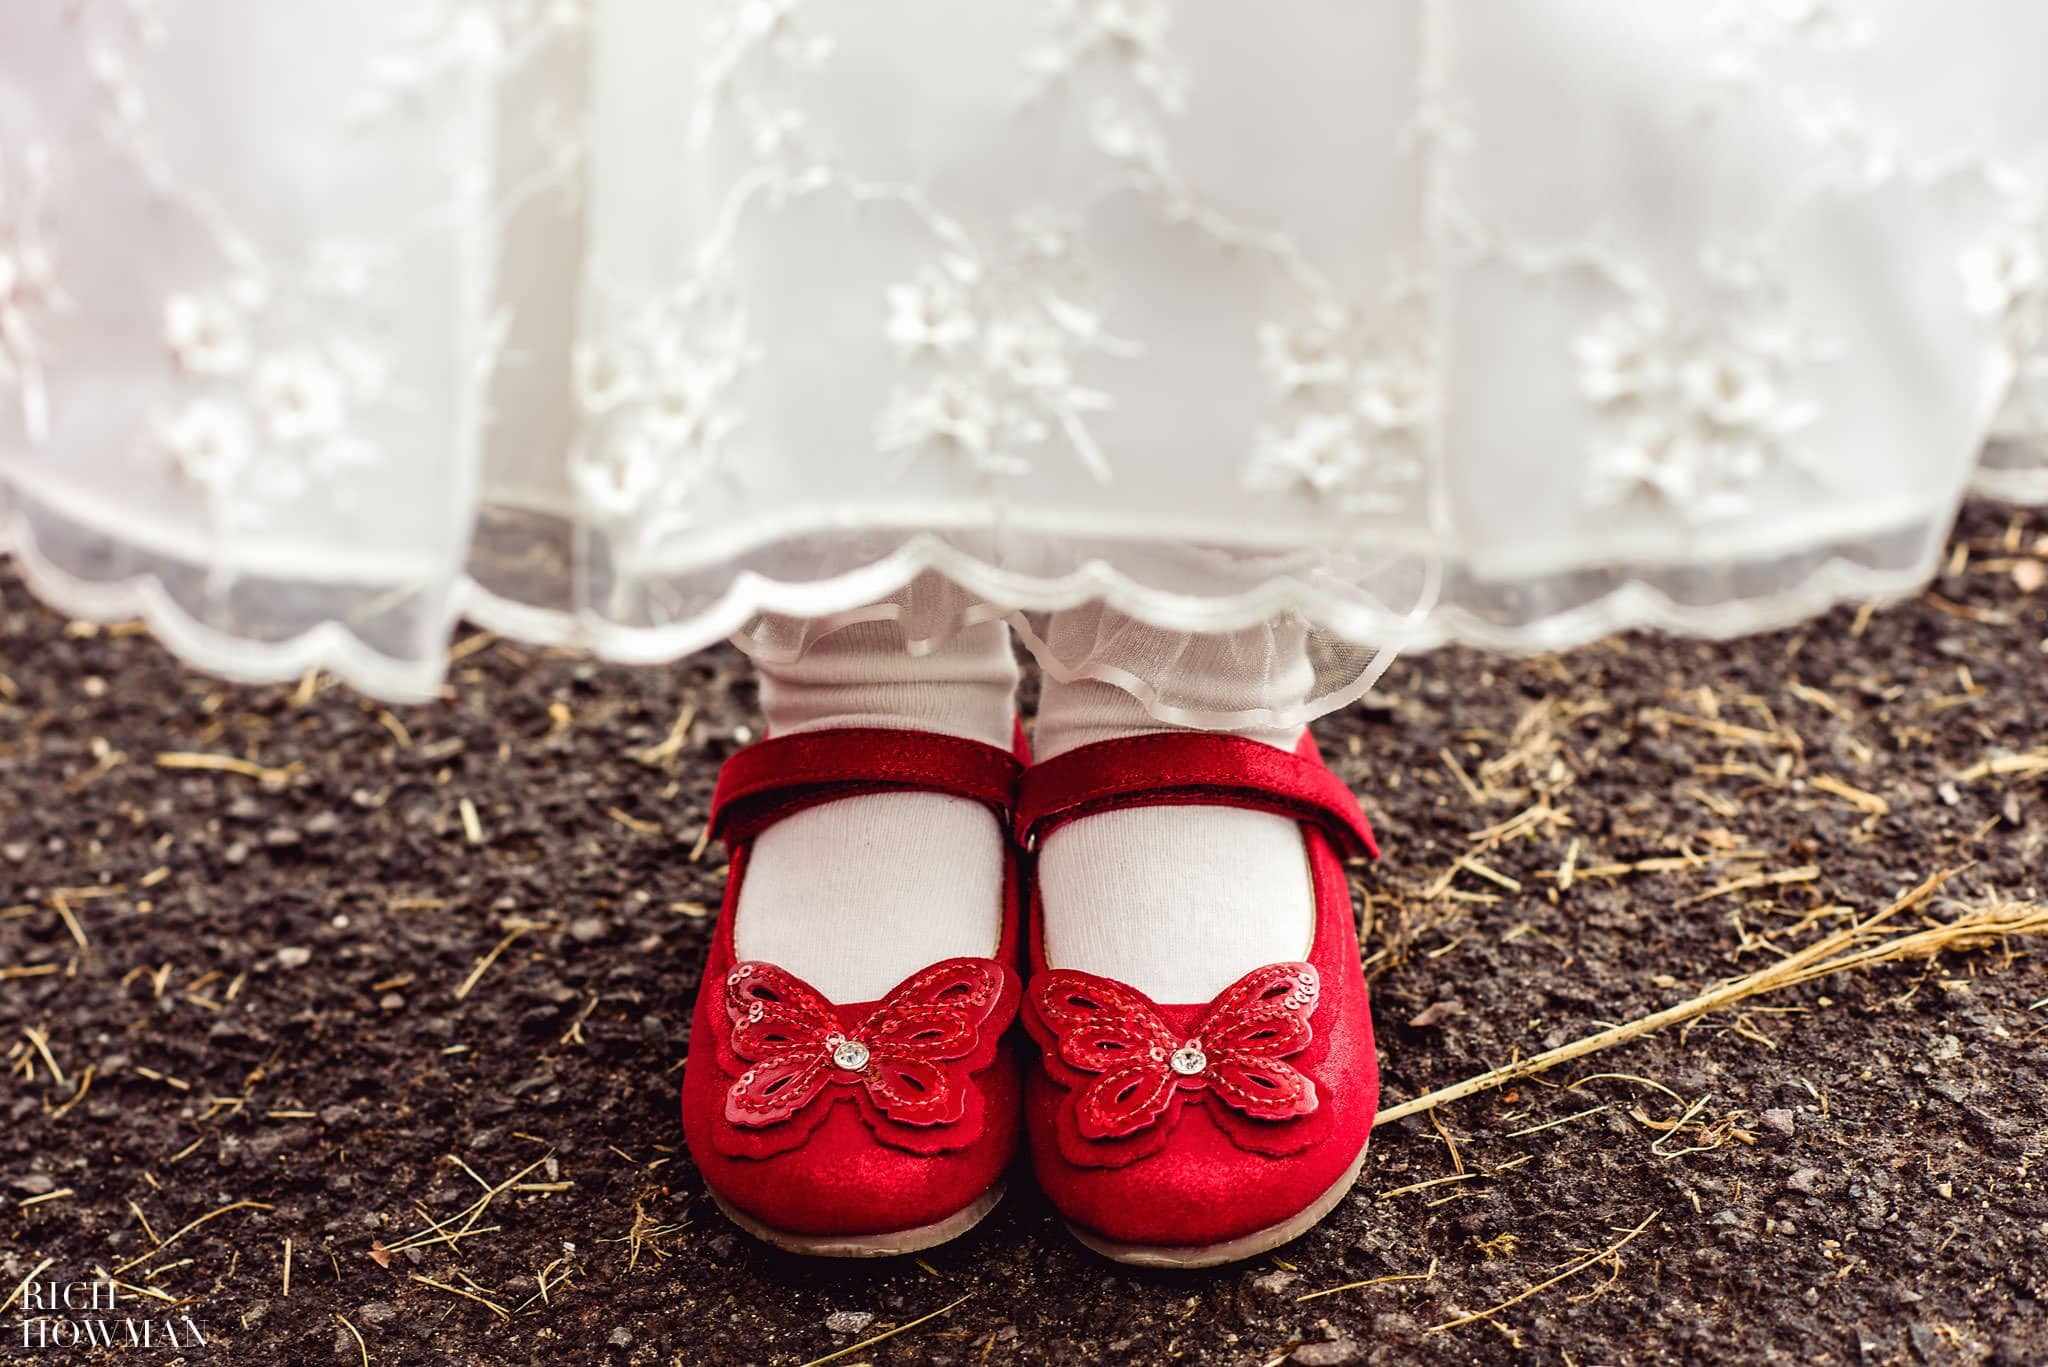 Flower Girl's red shoes